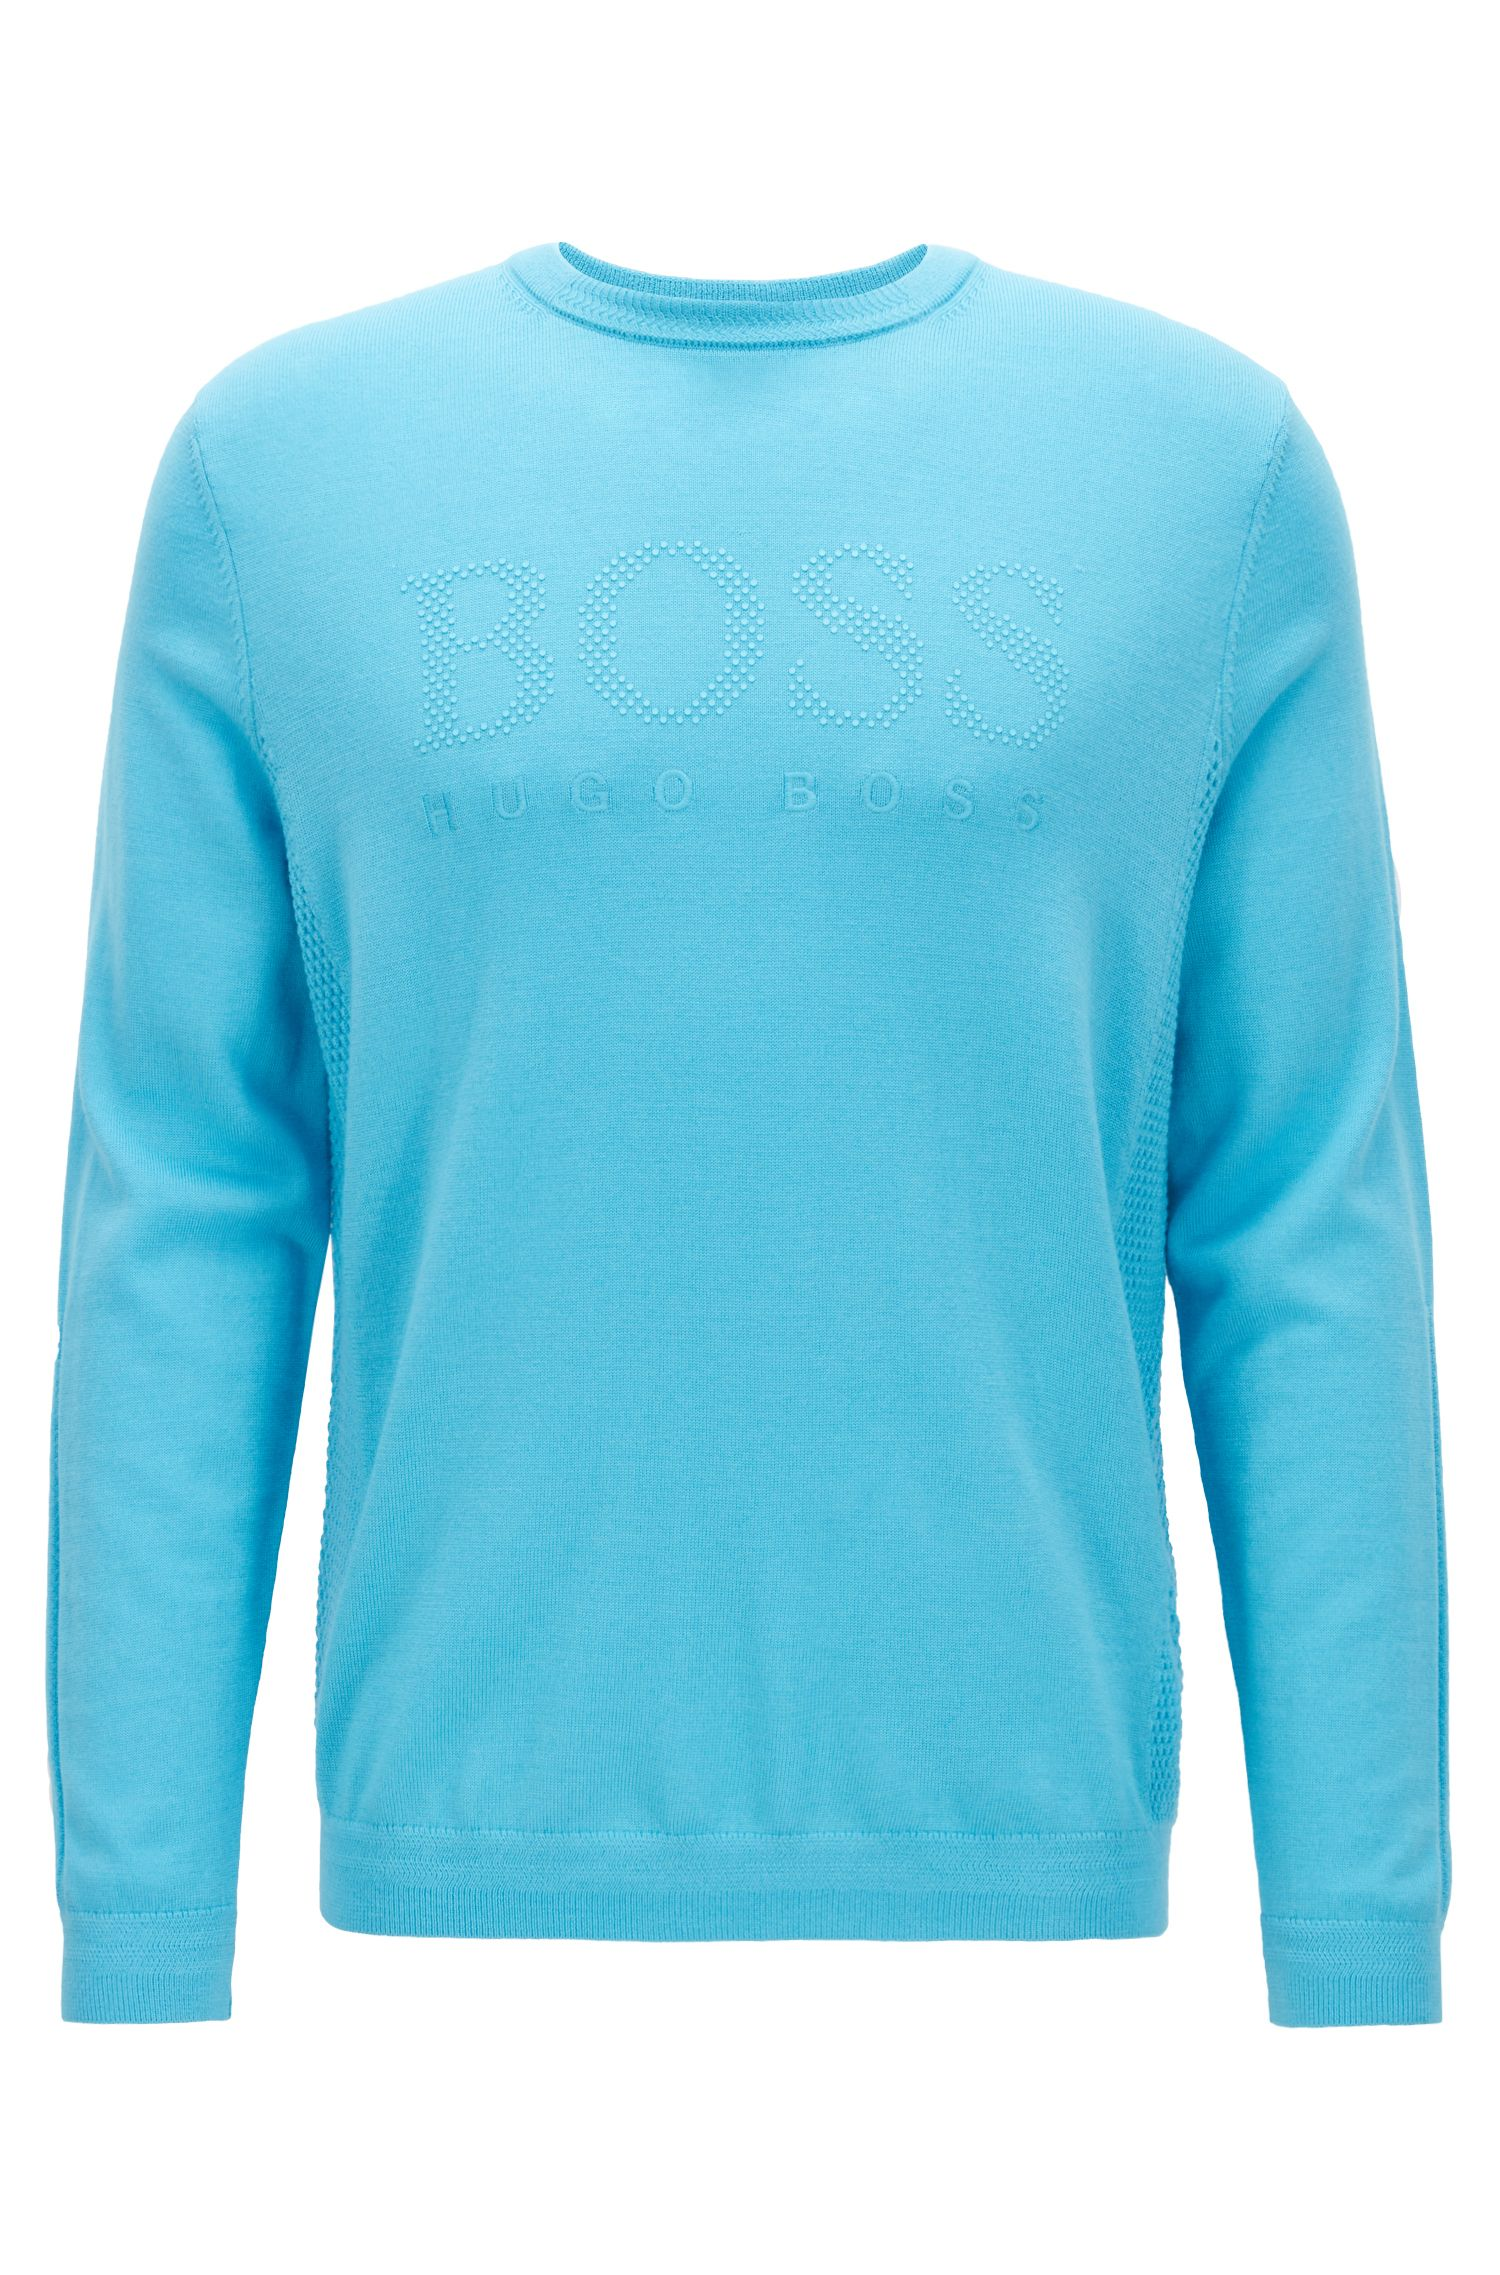 Crew-neck sweater in merino wool with knitted panels, Turquoise